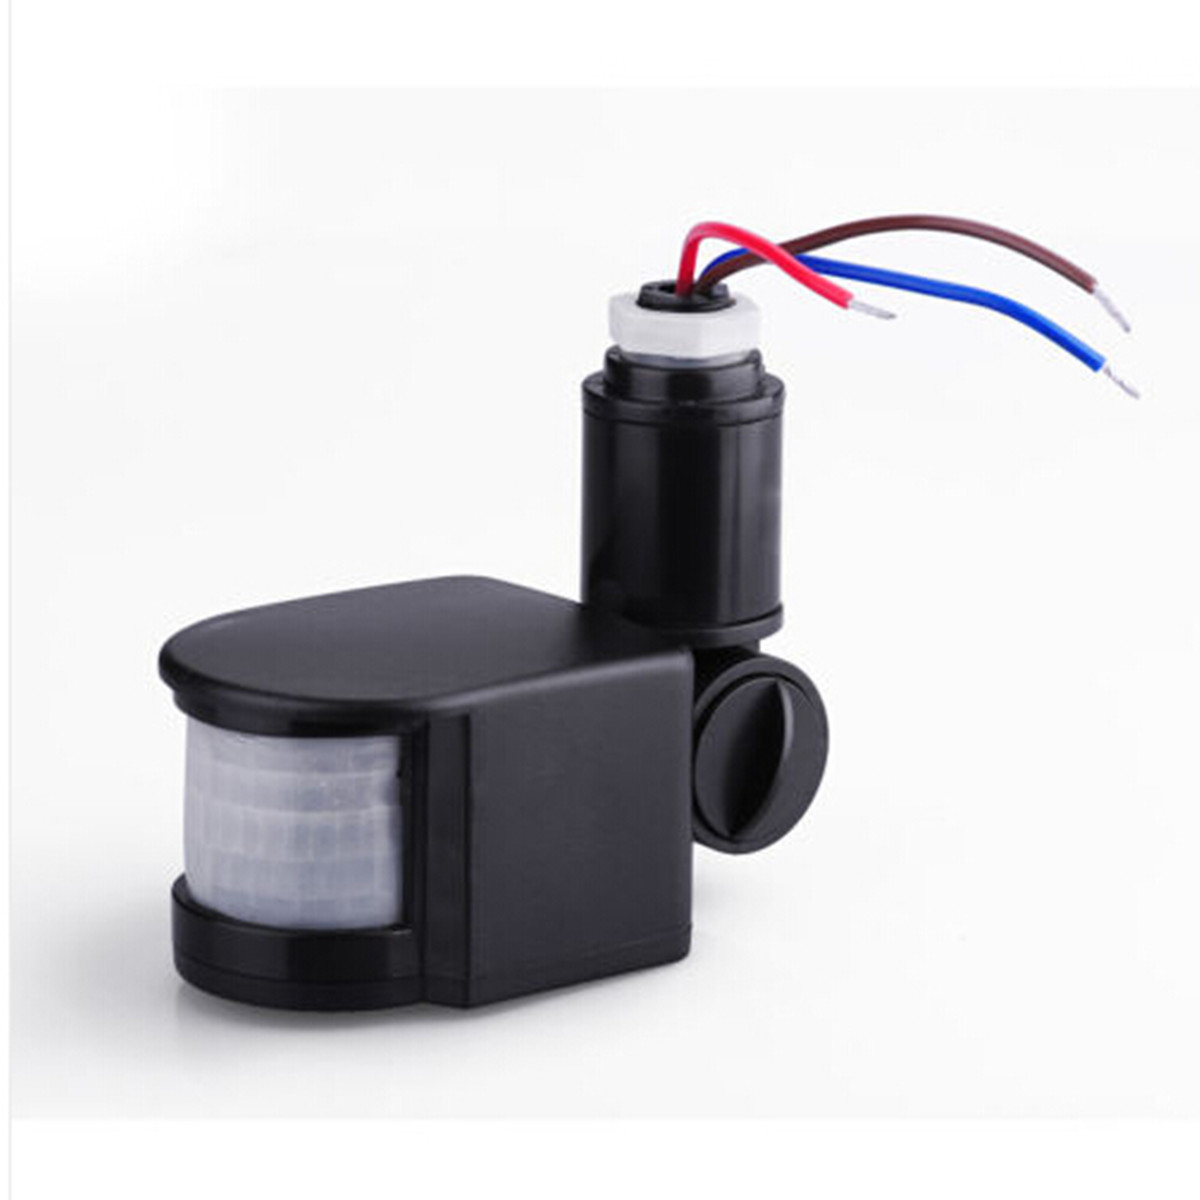 Buy outdoor 140 degree security pir motion movement sensor detector buy outdoor 140 degree security pir motion movement sensor detector switch bazaargadgets aloadofball Images